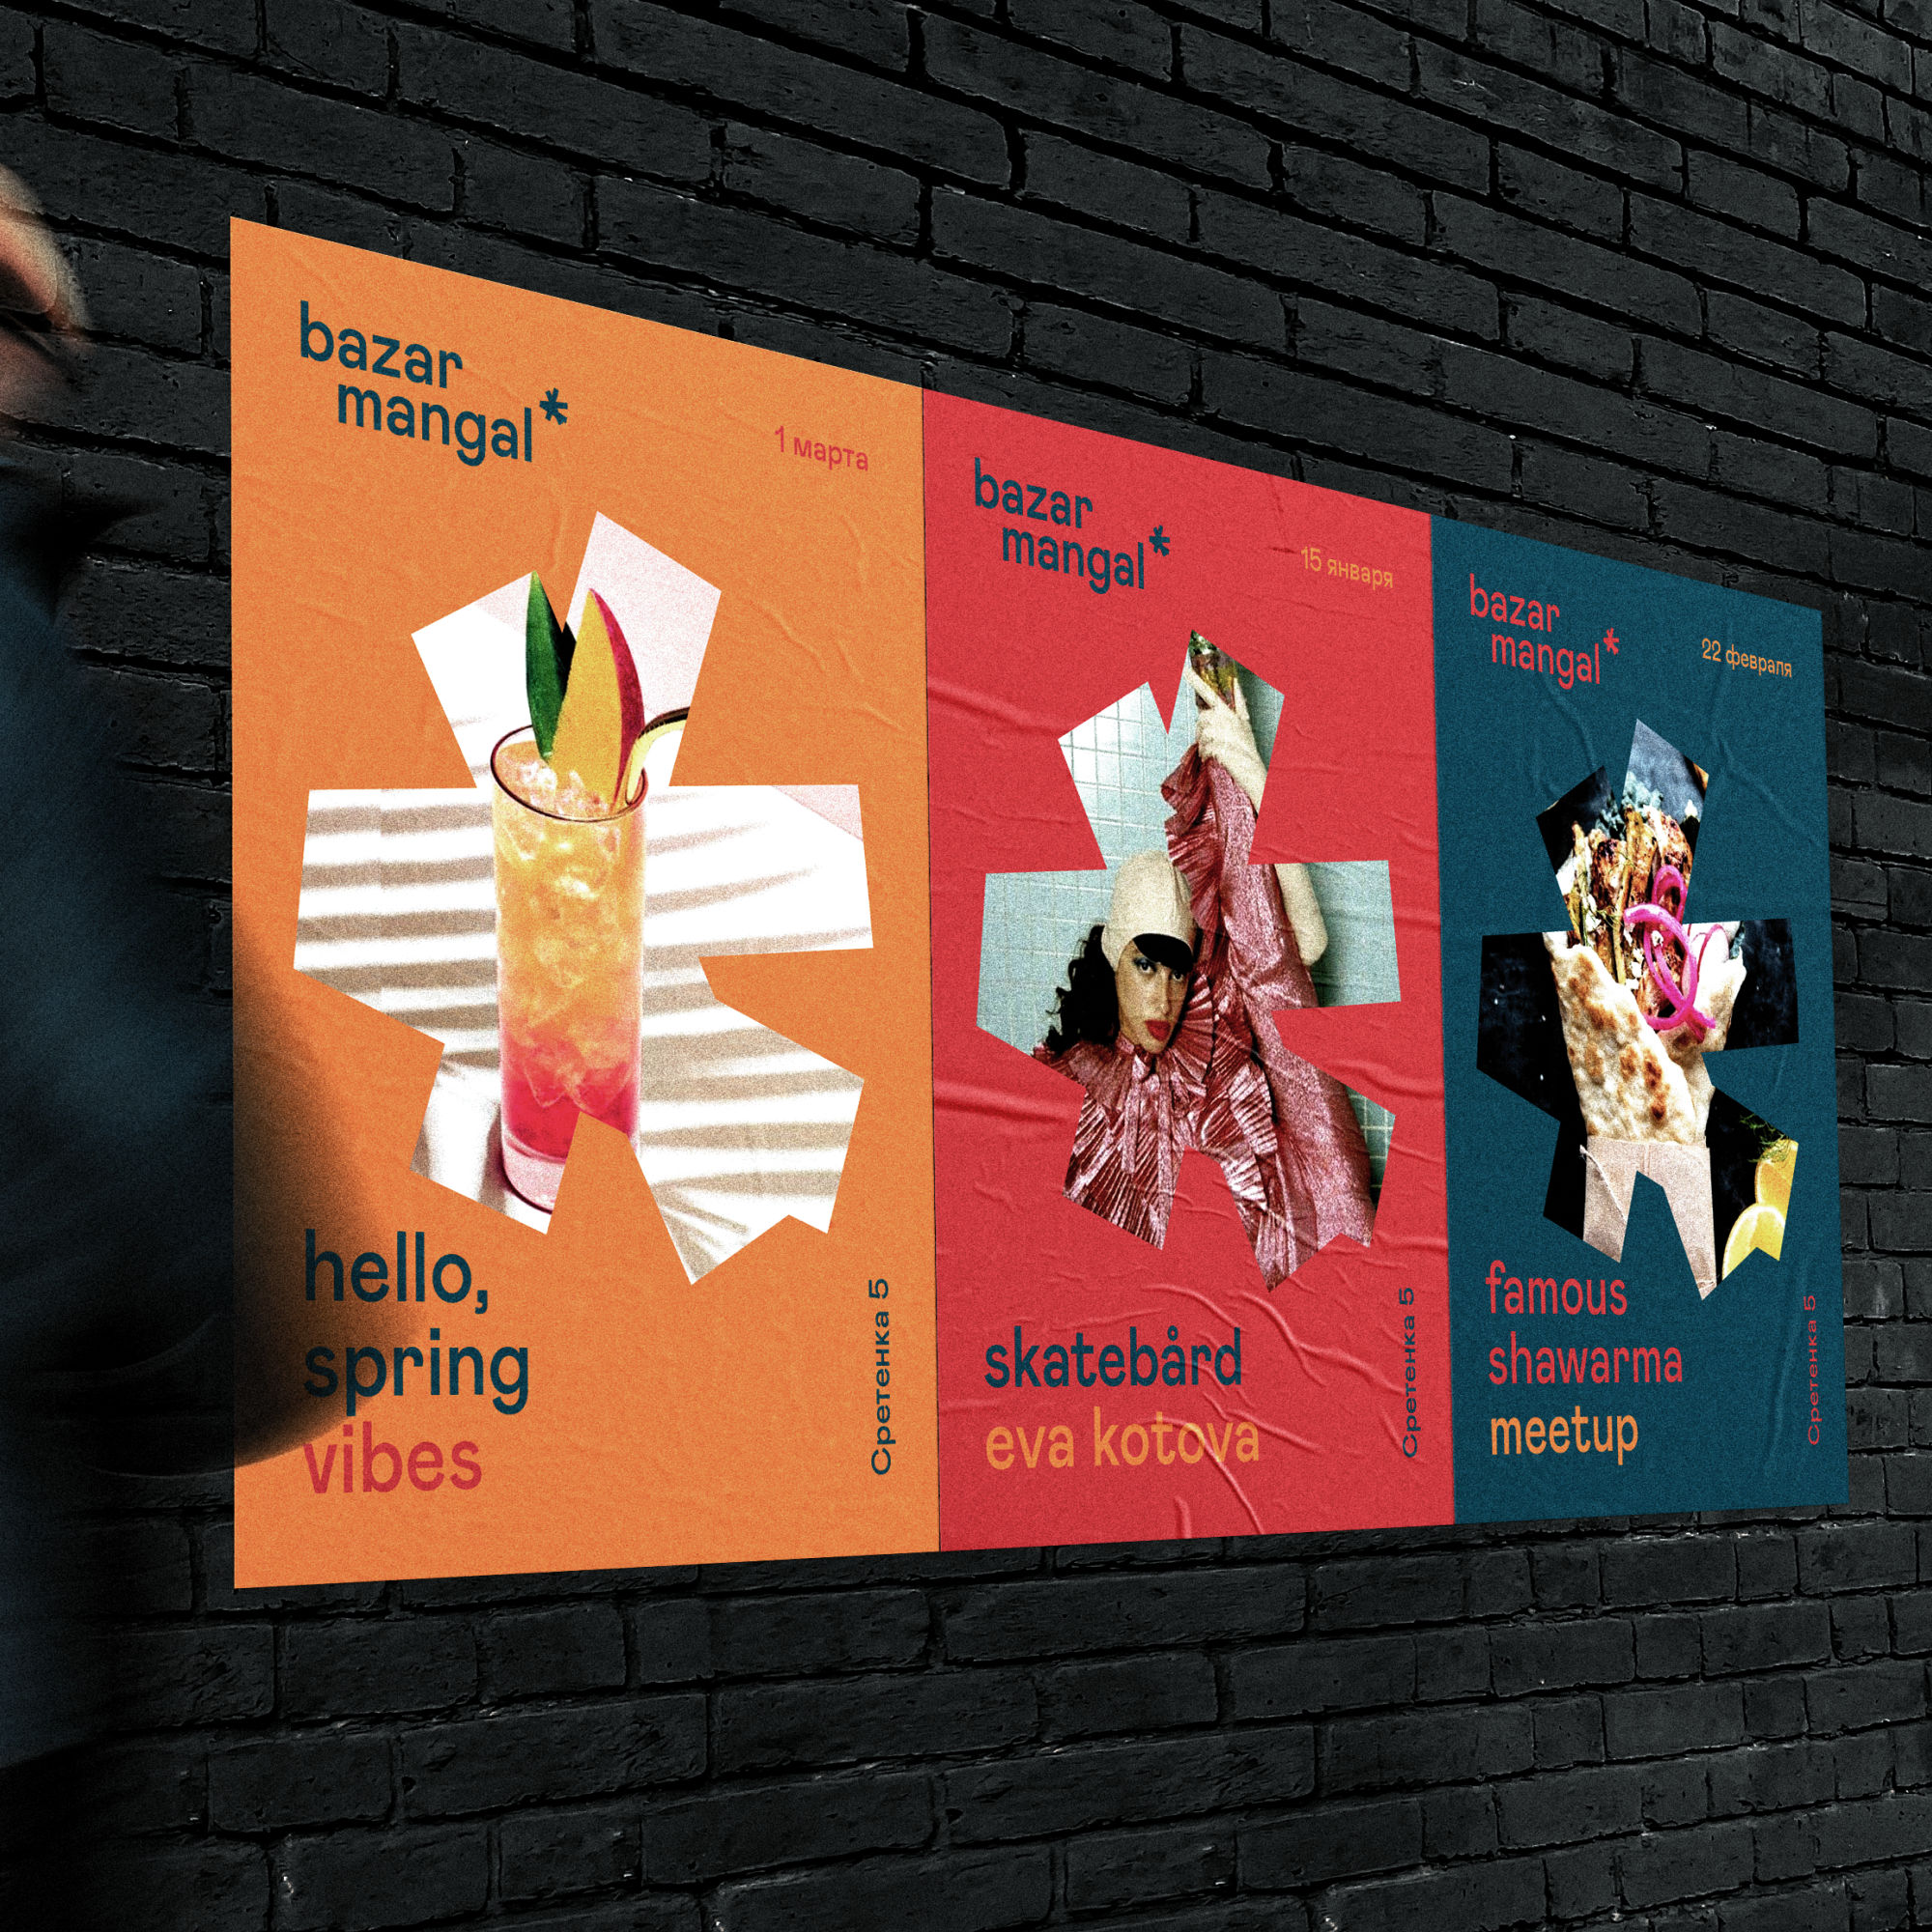 nOne Design Agency Creates the Branding for Bazar Mangal Cafe